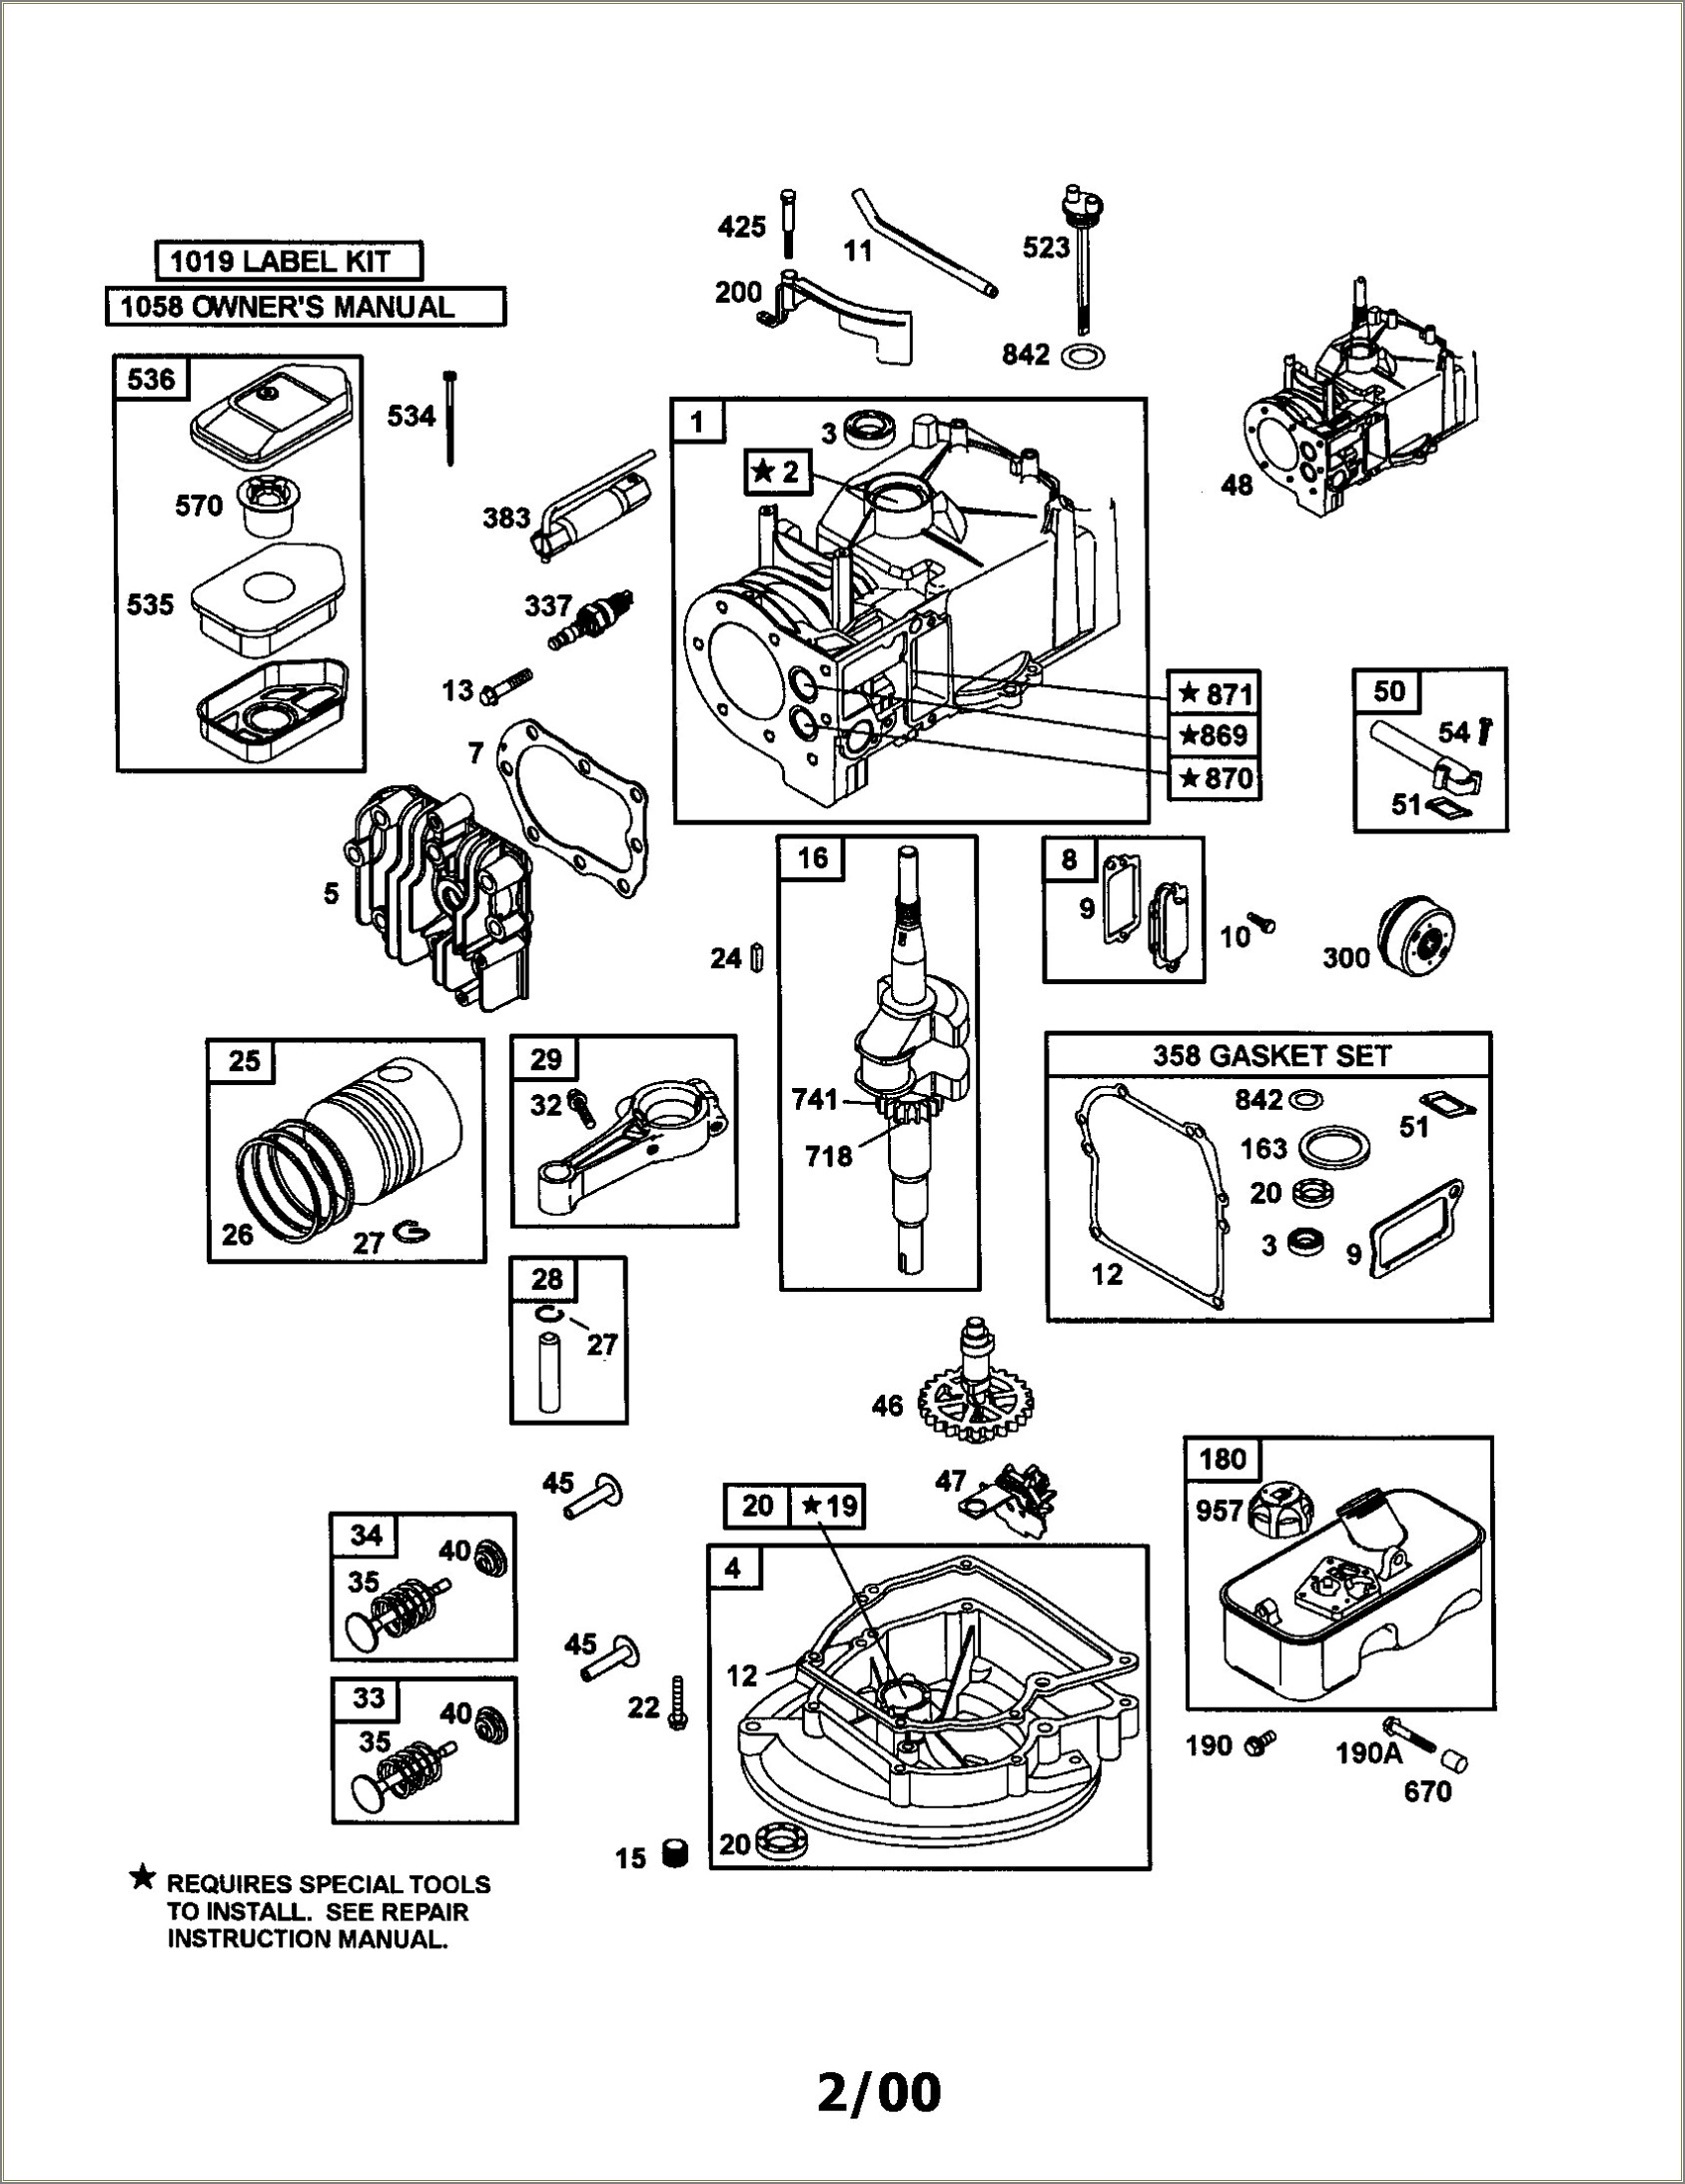 20 Hp Briggs And Stratton Engine Diagram